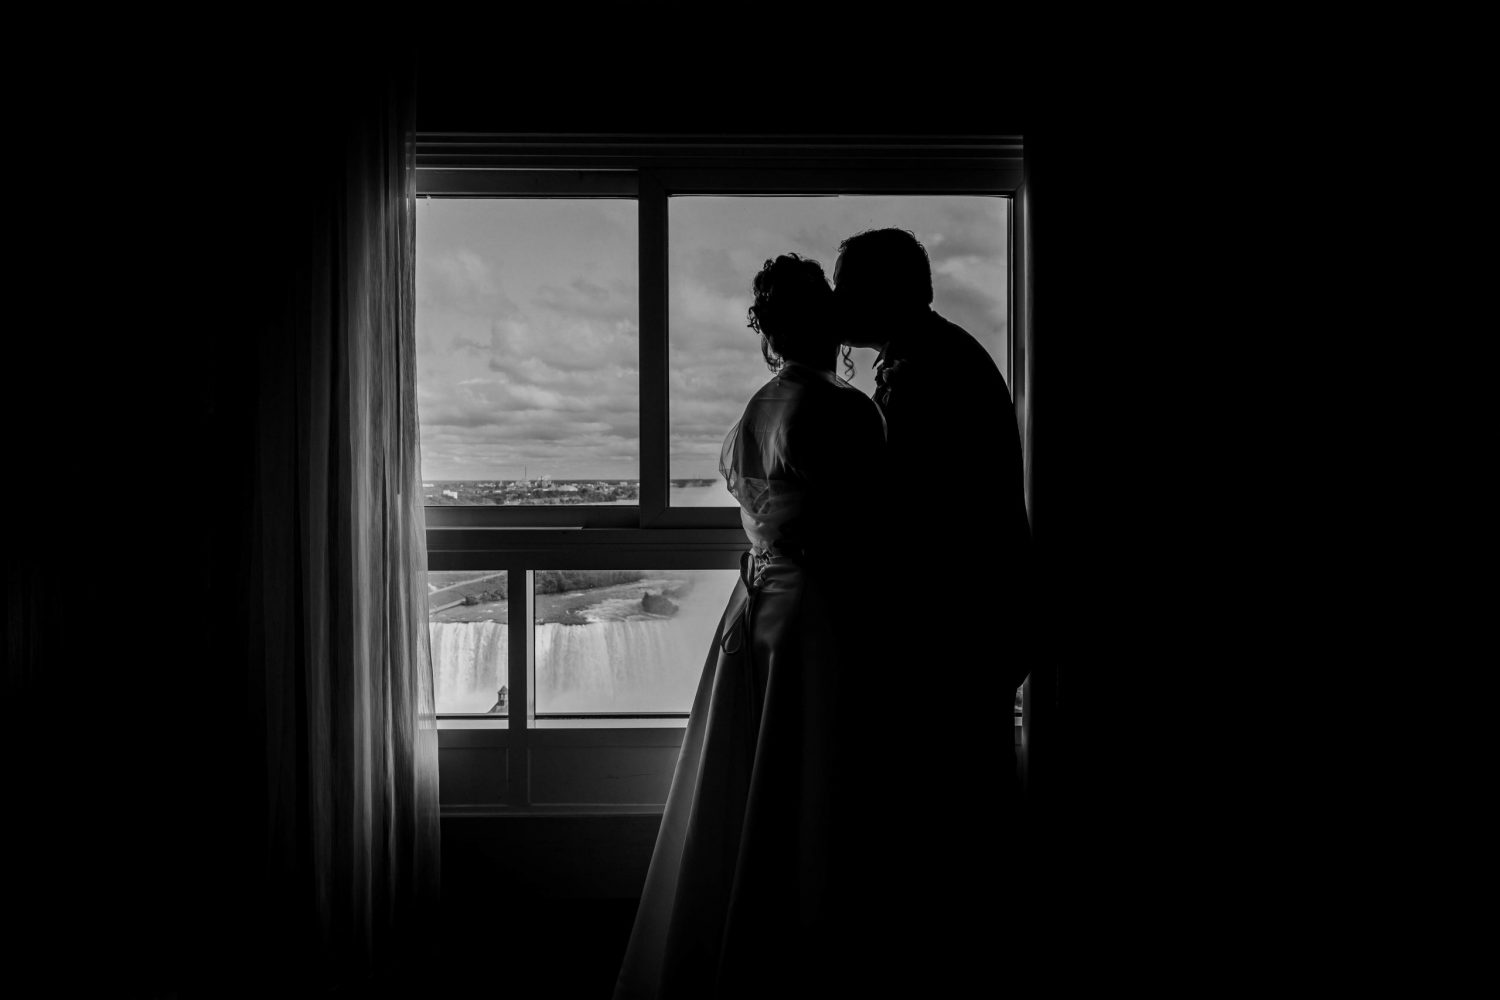 niagara falls wedding, niagara falls wedding photographer